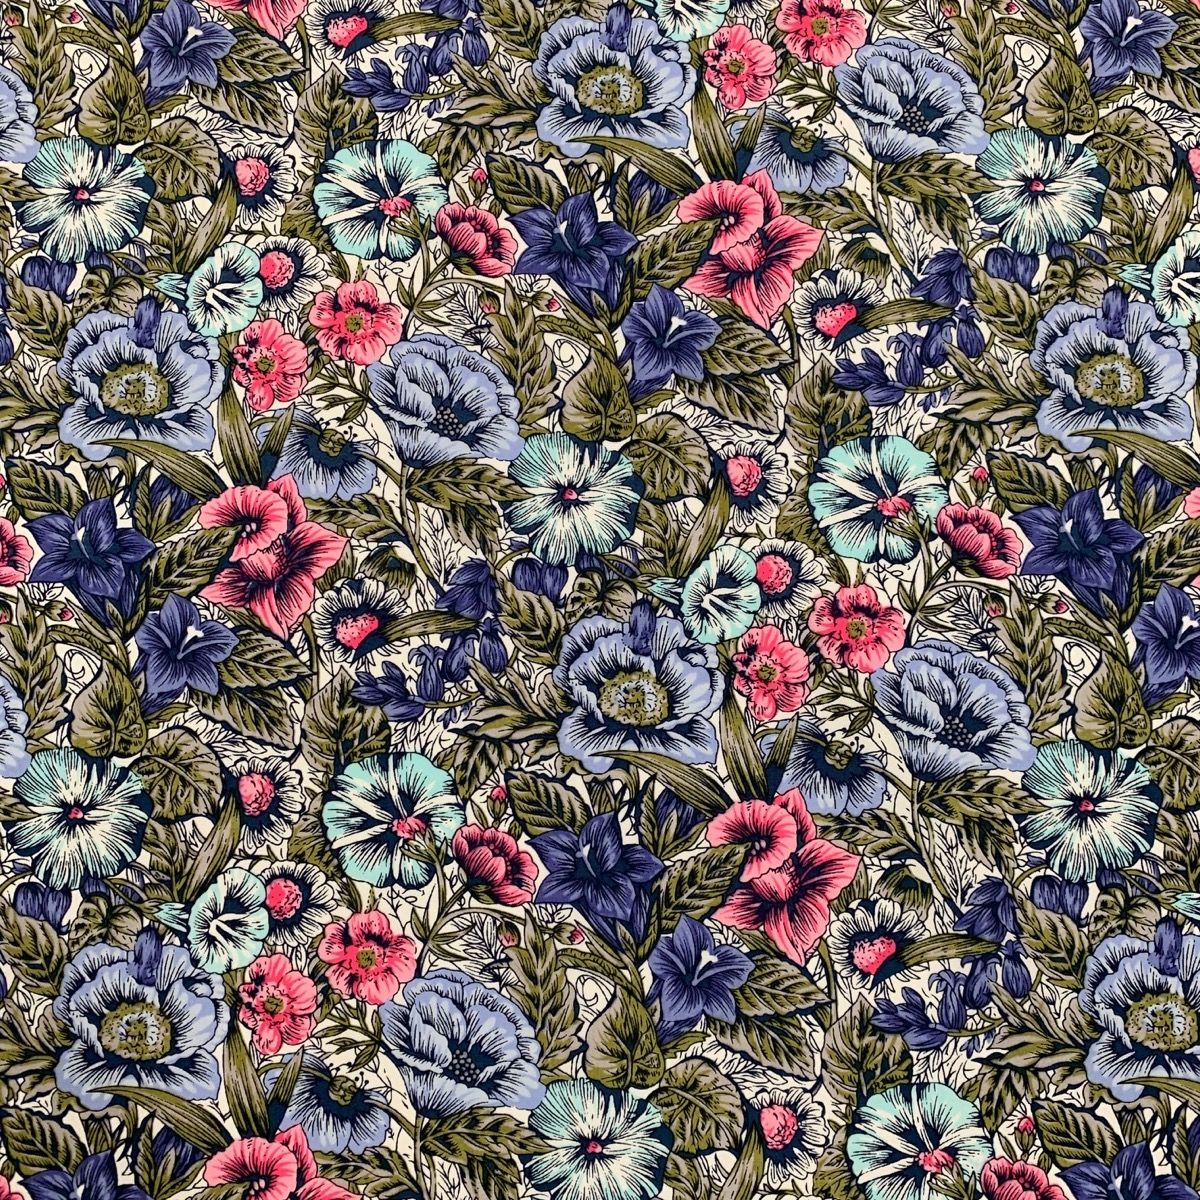 Cotton Lawn - Pink And Blue Country Floral